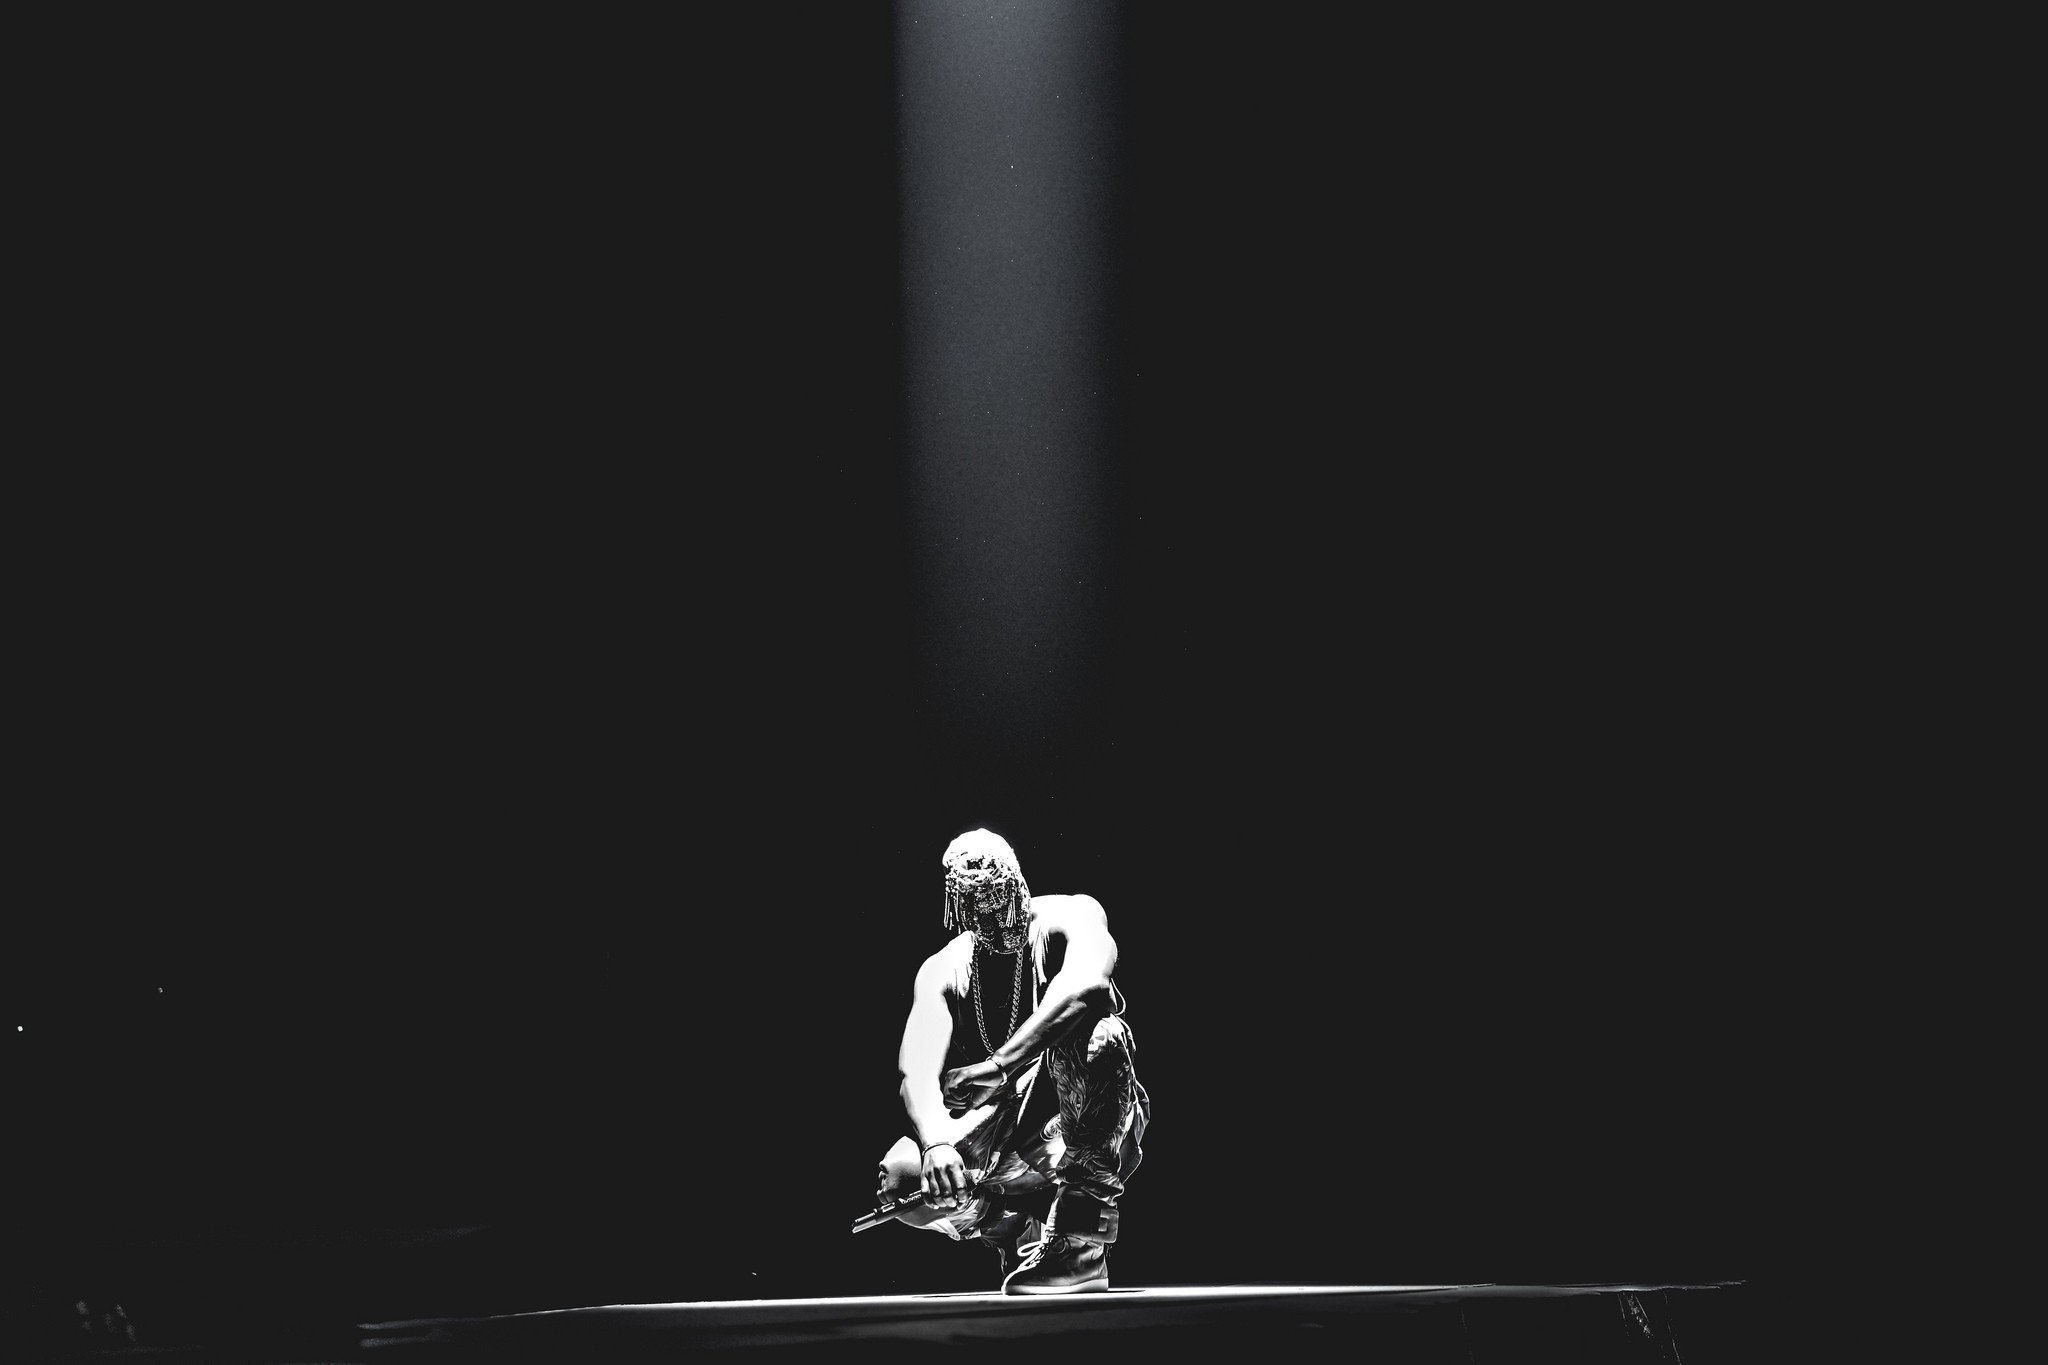 monochrome kanye west wallpaper 59577